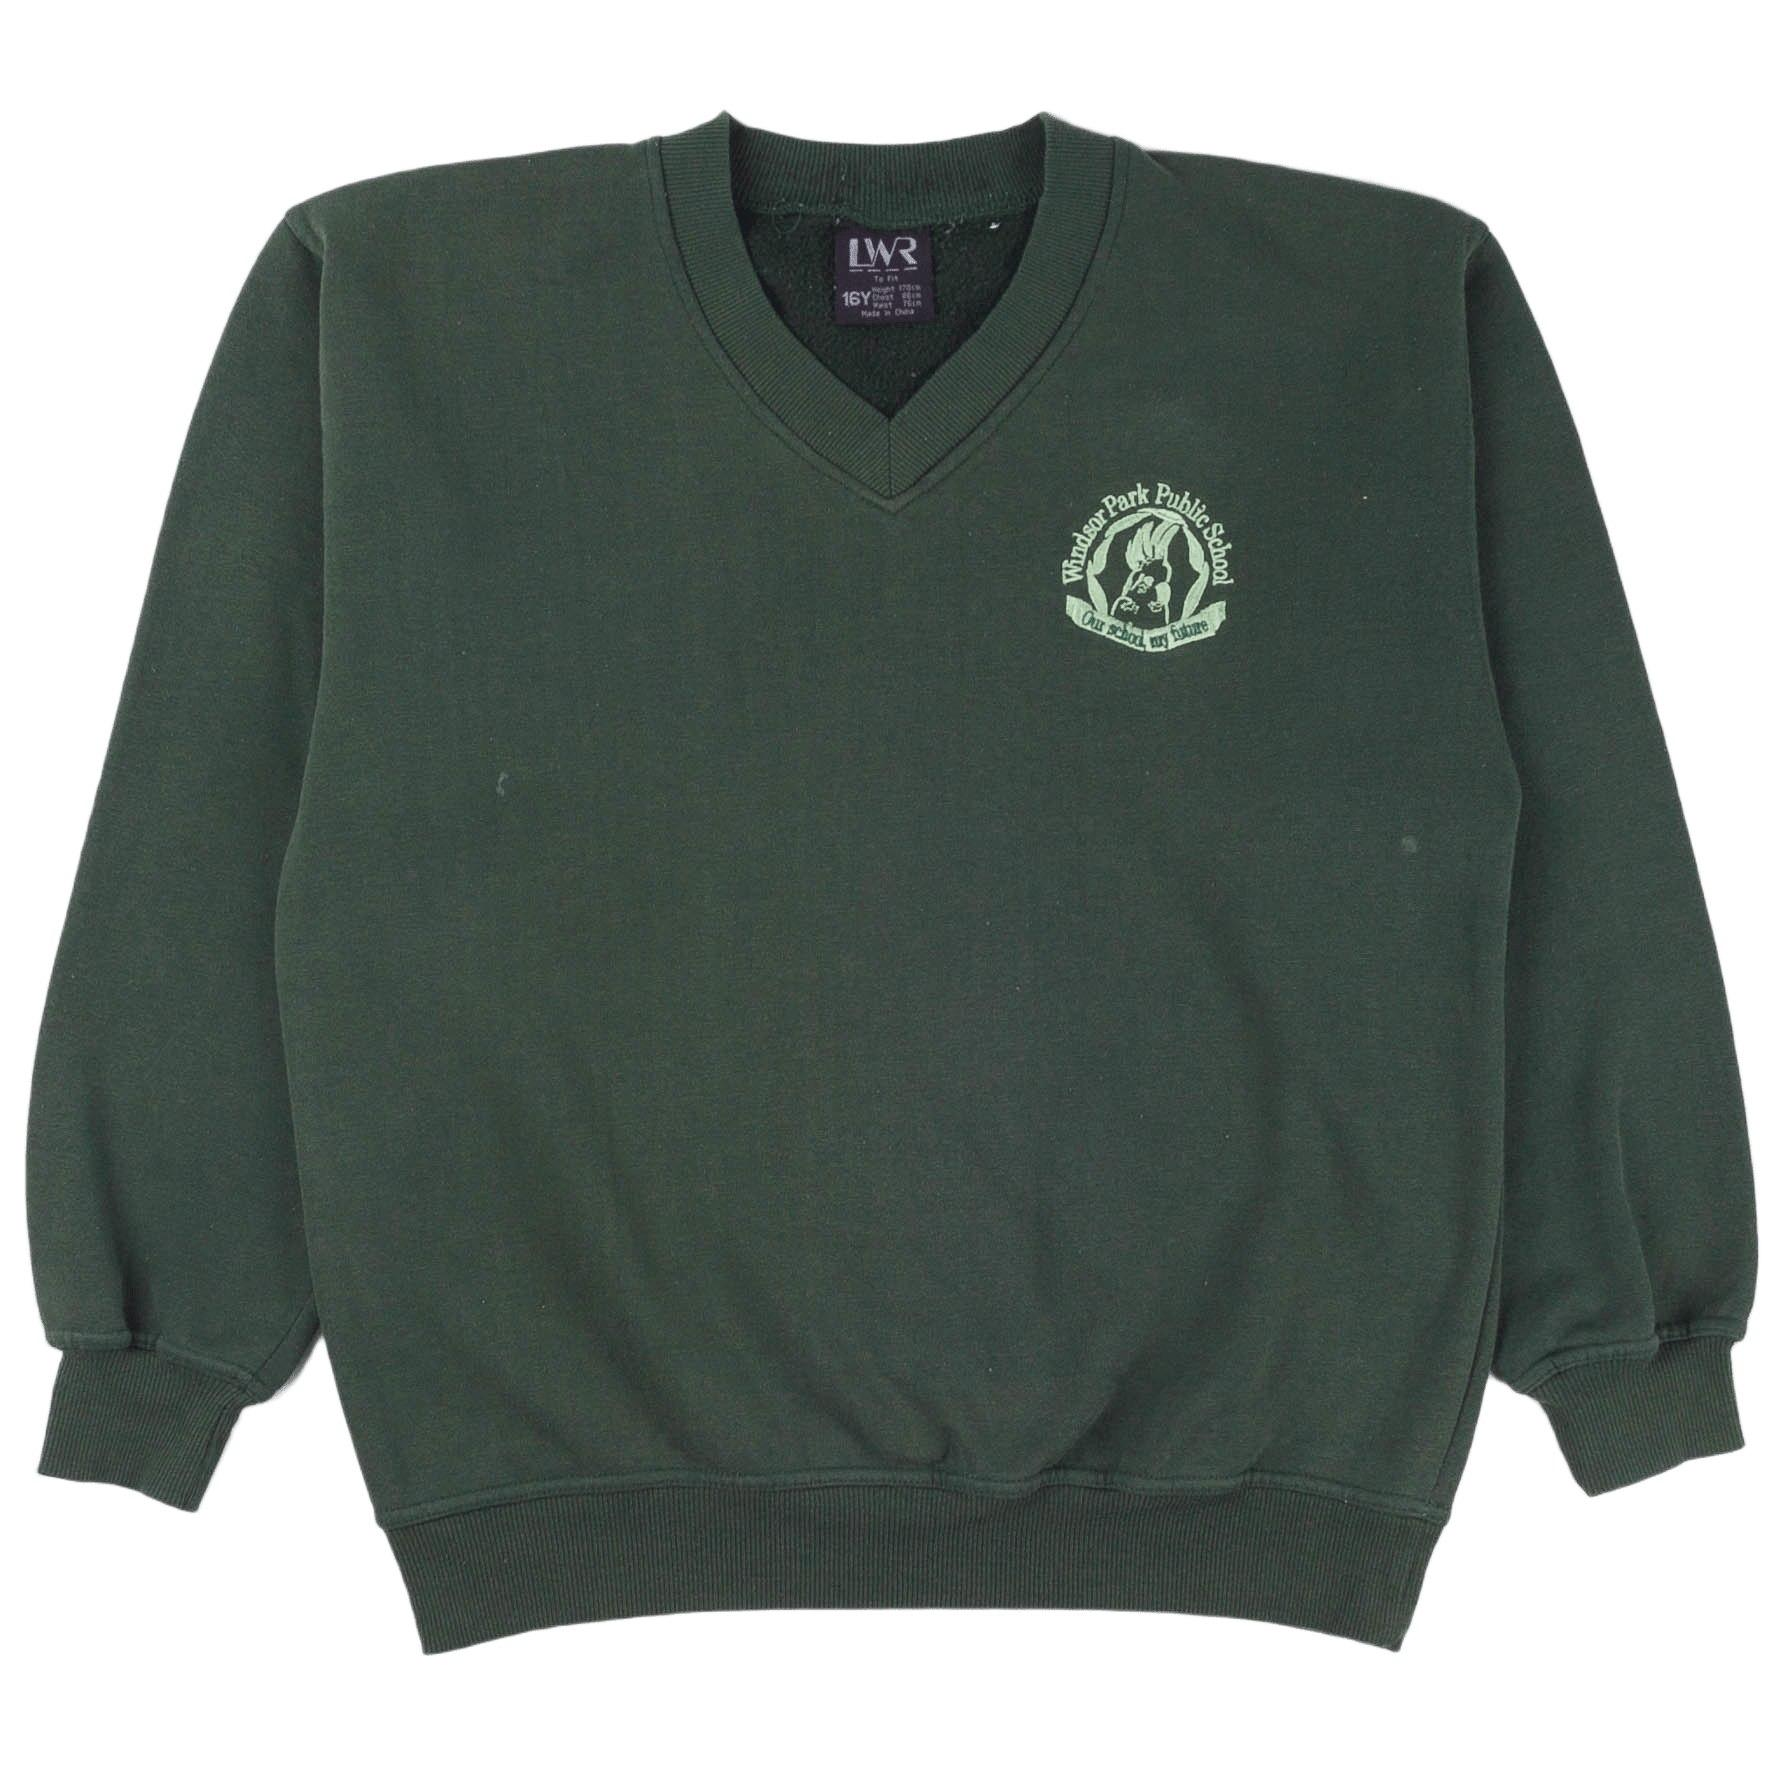 Windsor Park Public School Sweatshirt